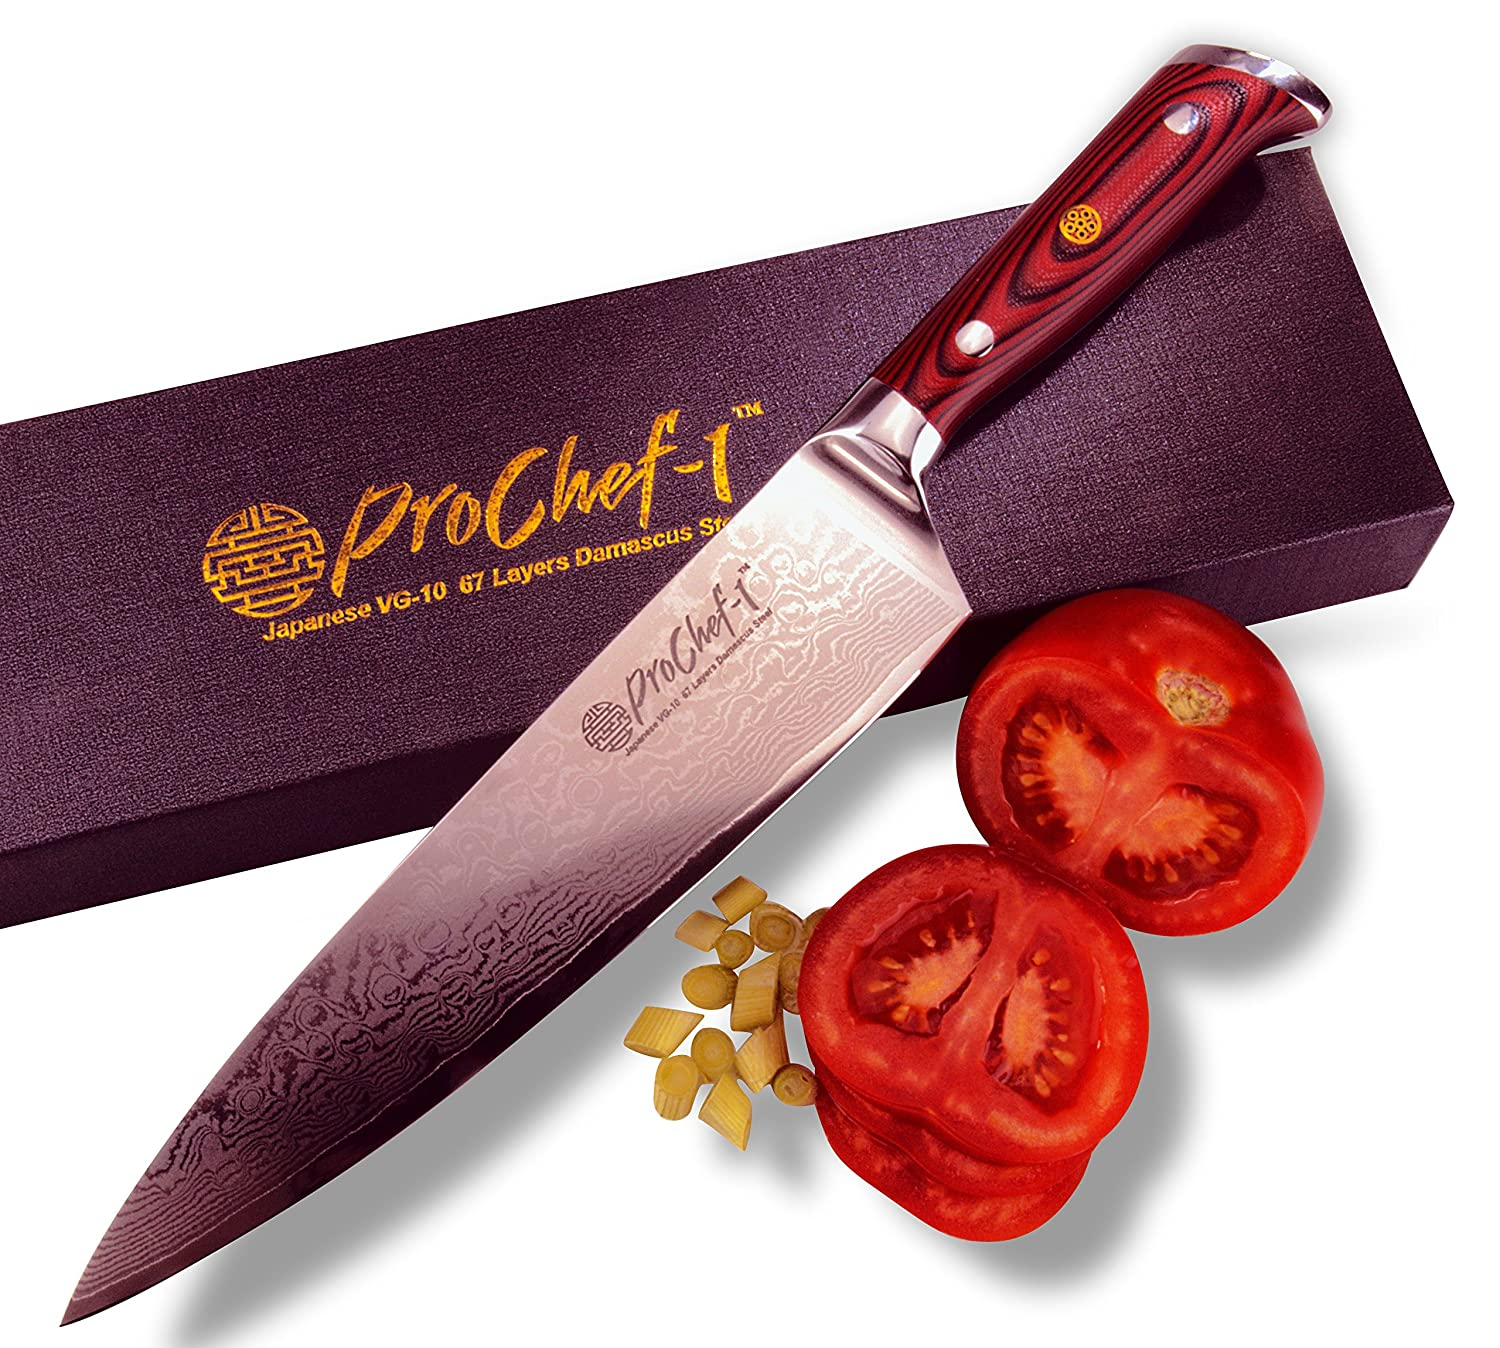 amazon com professional 8 inch chefs knife by prochef1 67 layer amazon com professional 8 inch chefs knife by prochef1 67 layer vg10 super steel damascus gyuto styled top quality japanese high carbon stainless steel